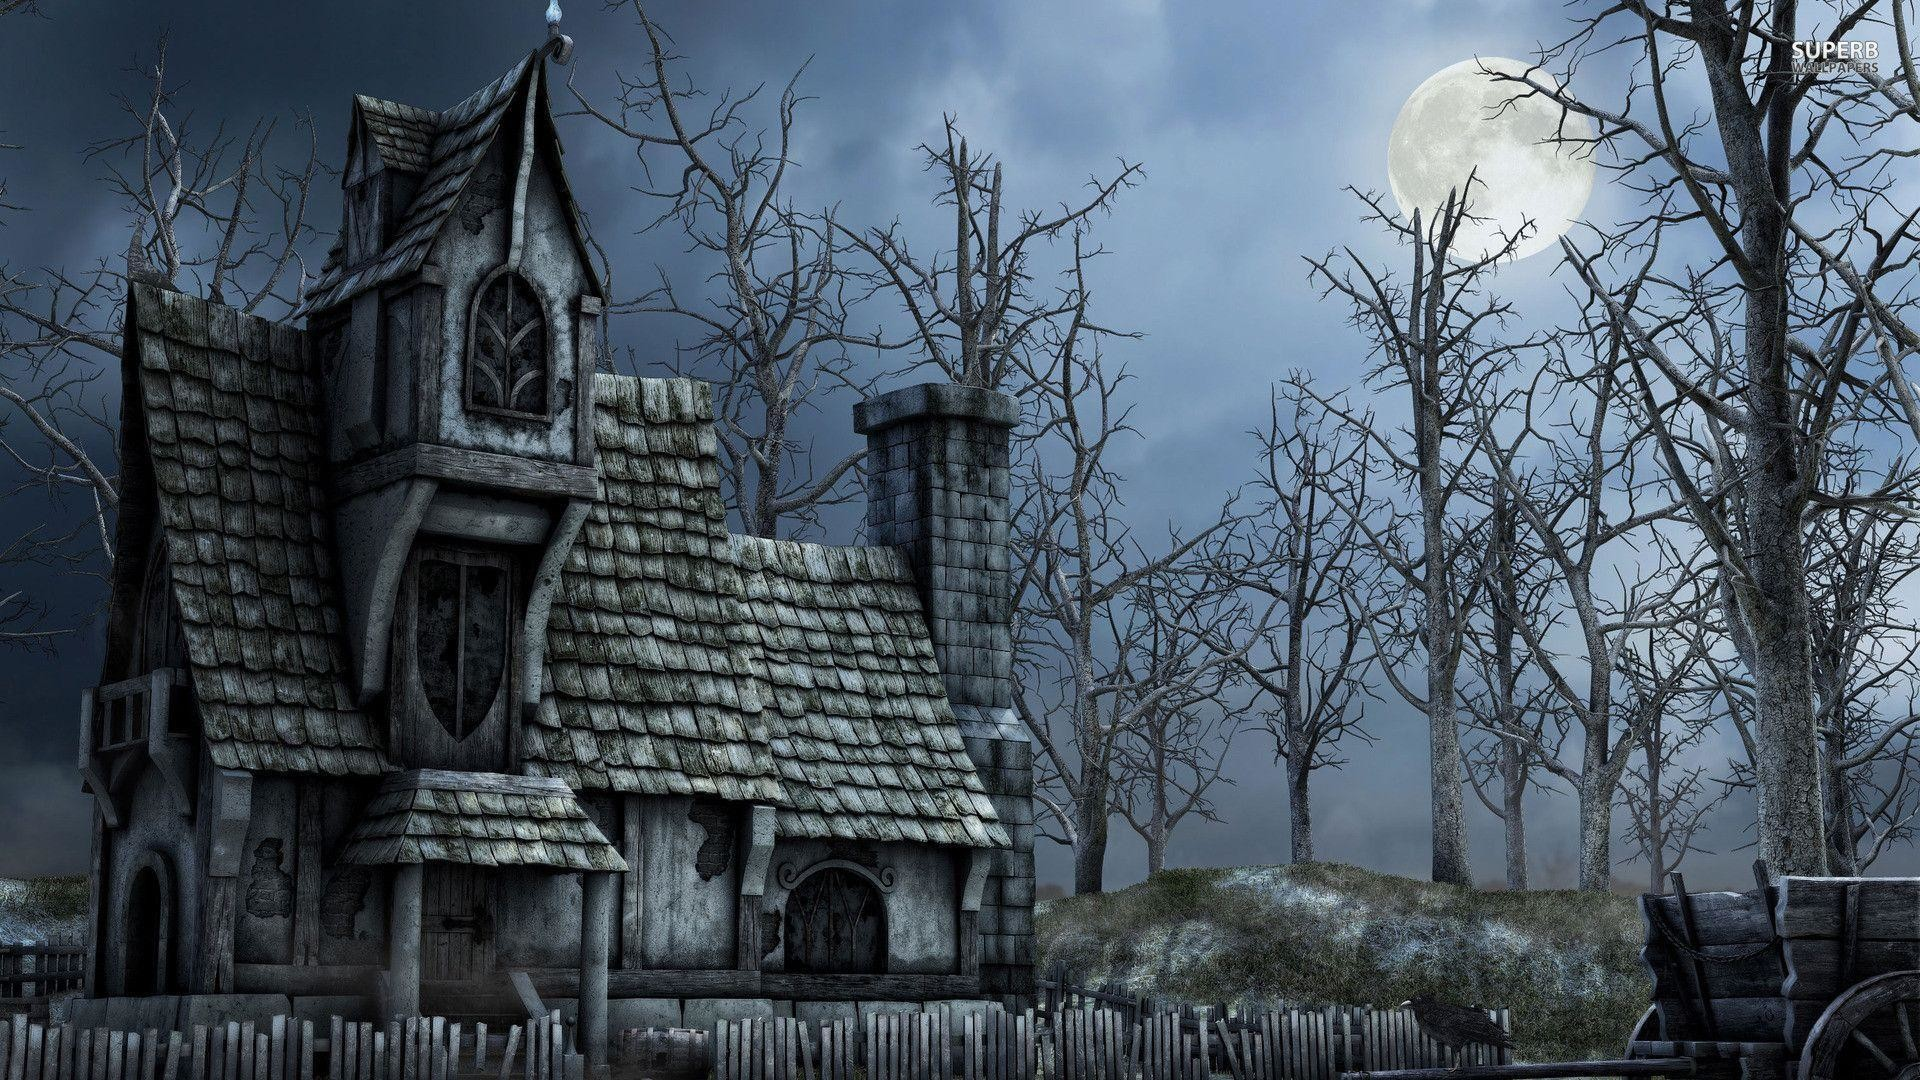 1920x1080 Haunted house wallpaper - Fantasy wallpapers - #